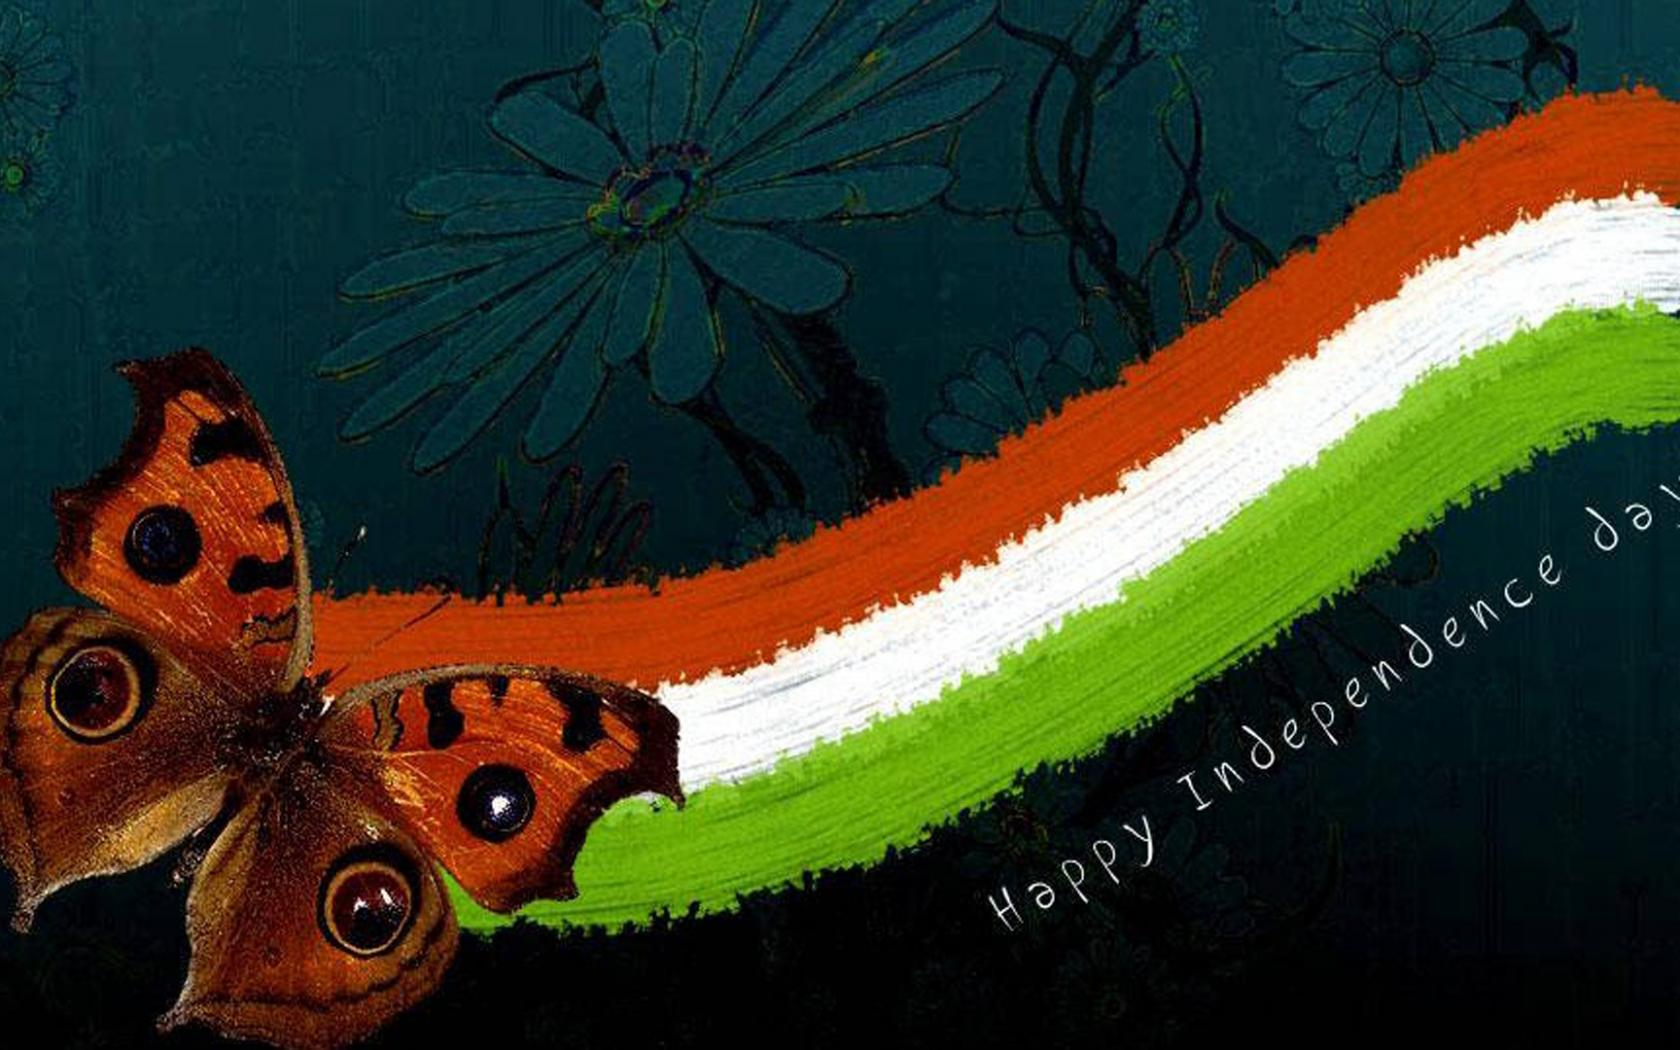 India Flag Hd Art: India Flag Art For Independence Day Wallpaper